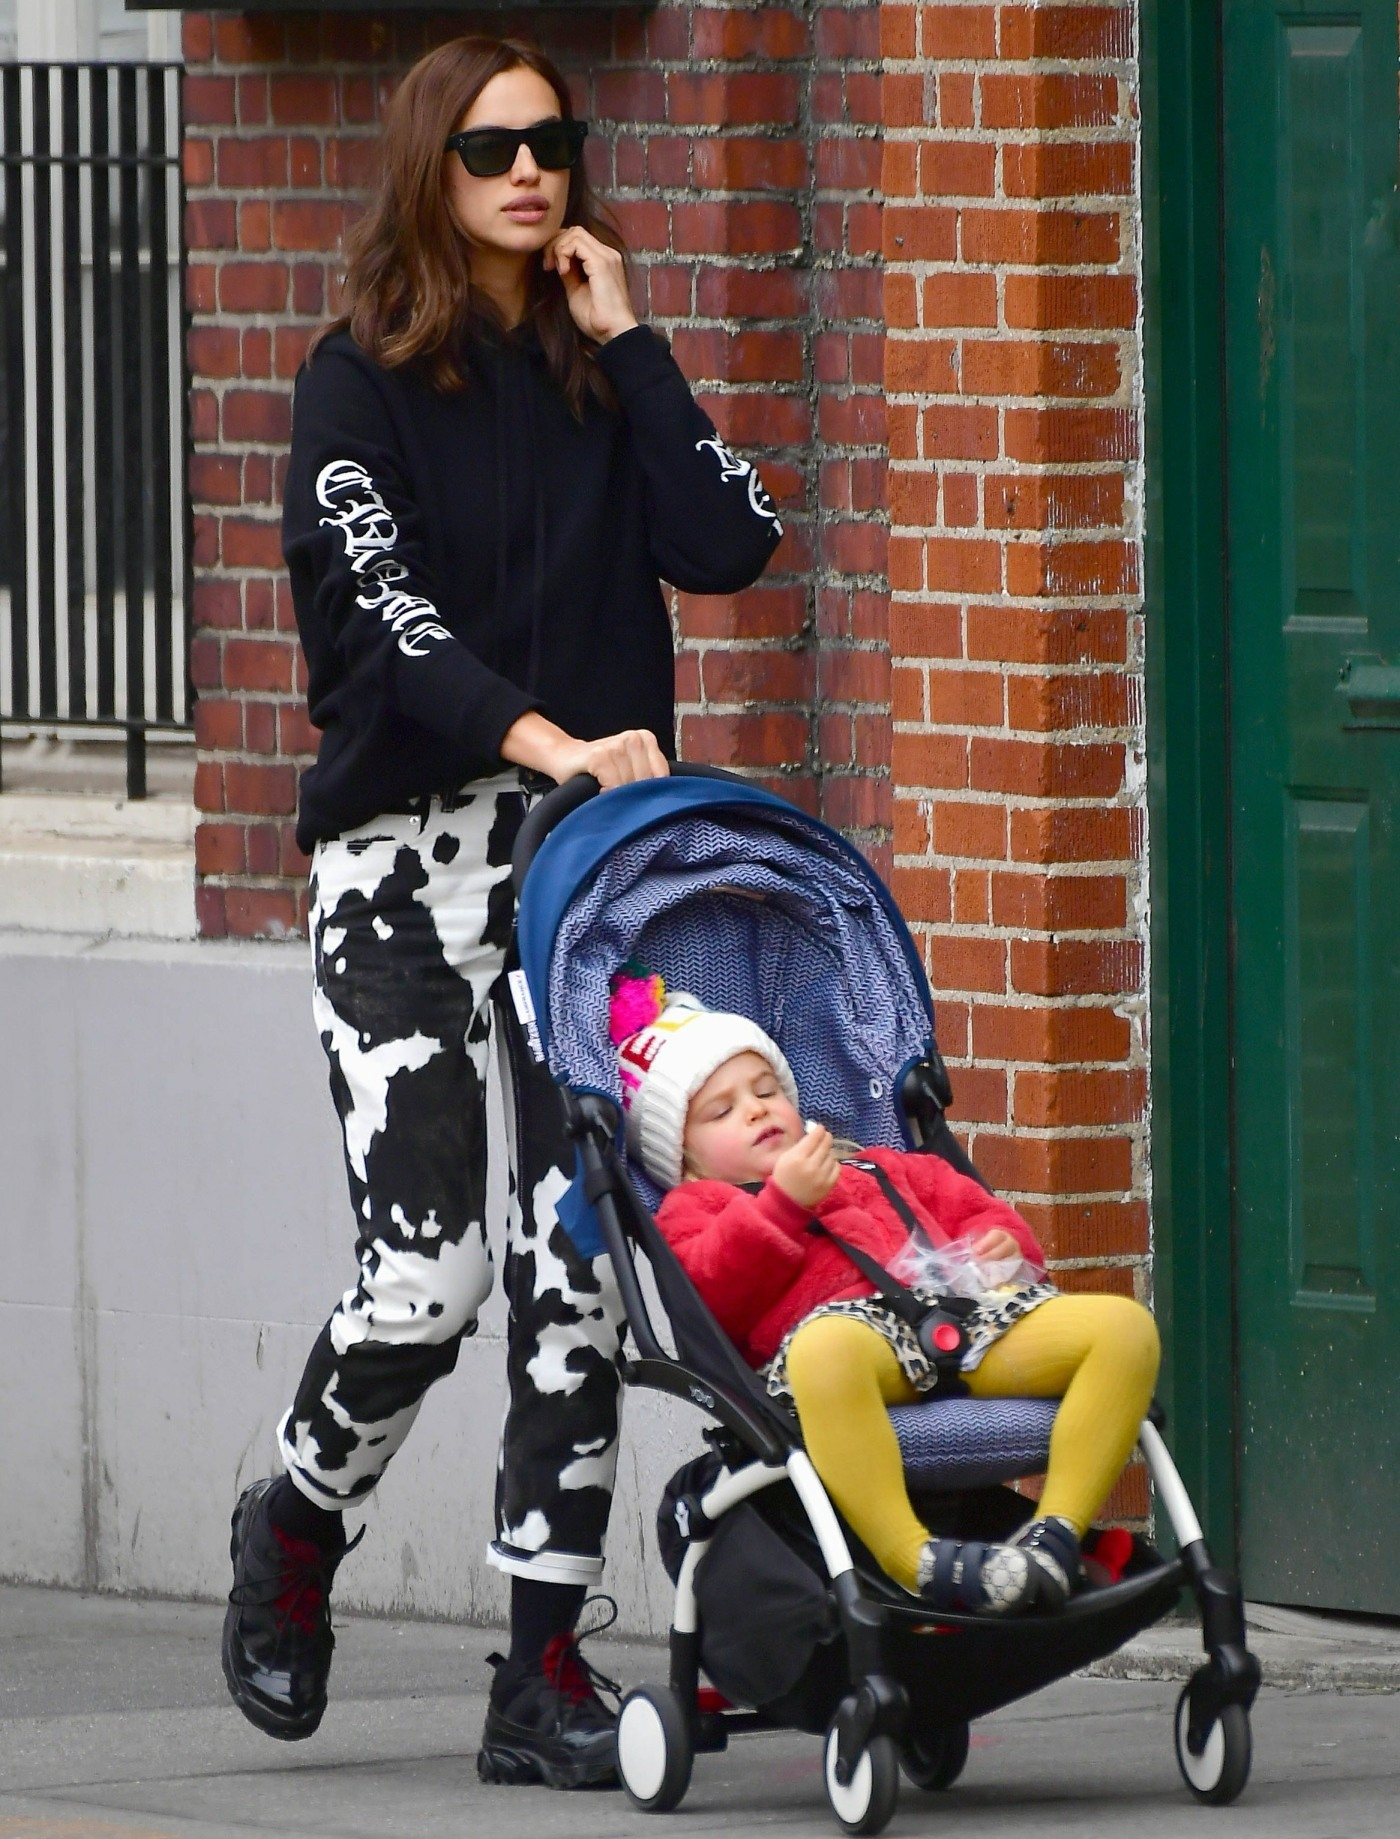 Irina Shayk enjoys a morning out with her daughter